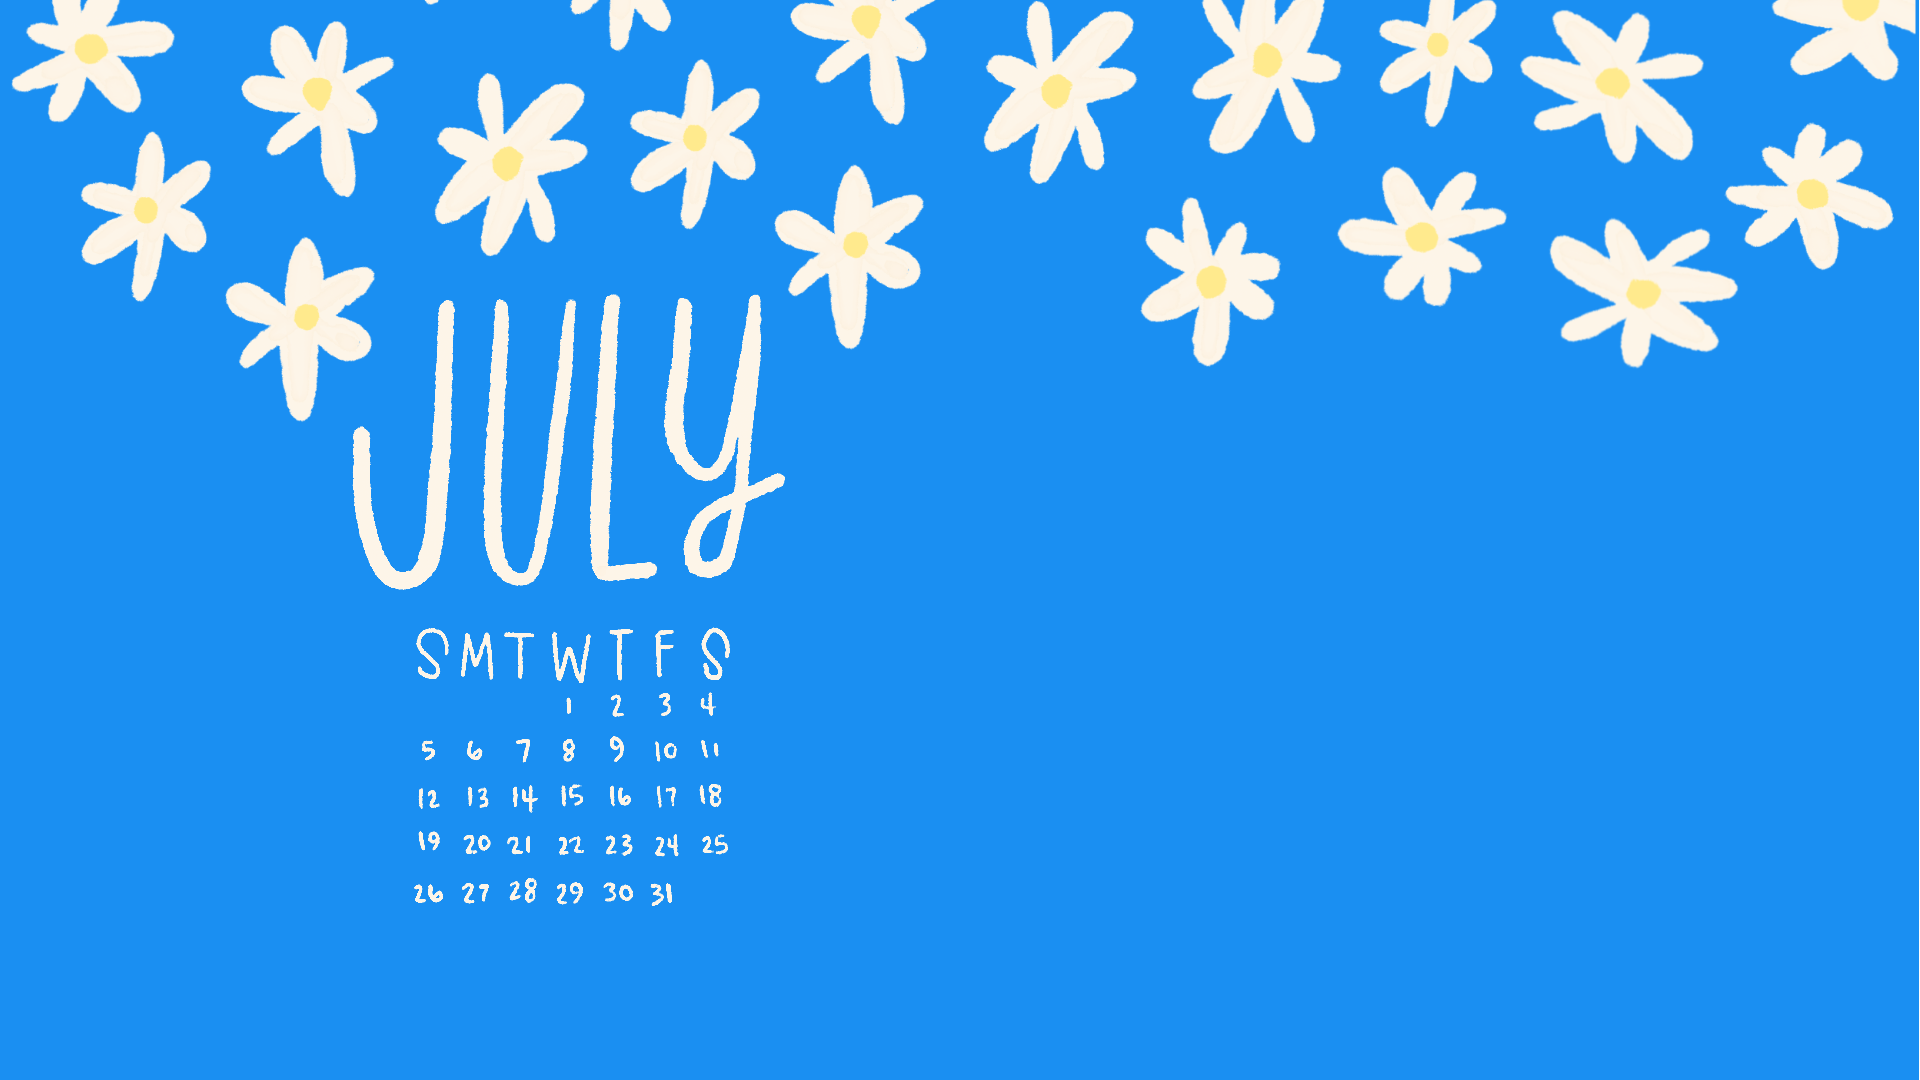 July 2020 Wallpapers & Folder Icons - Whatever Bright Things